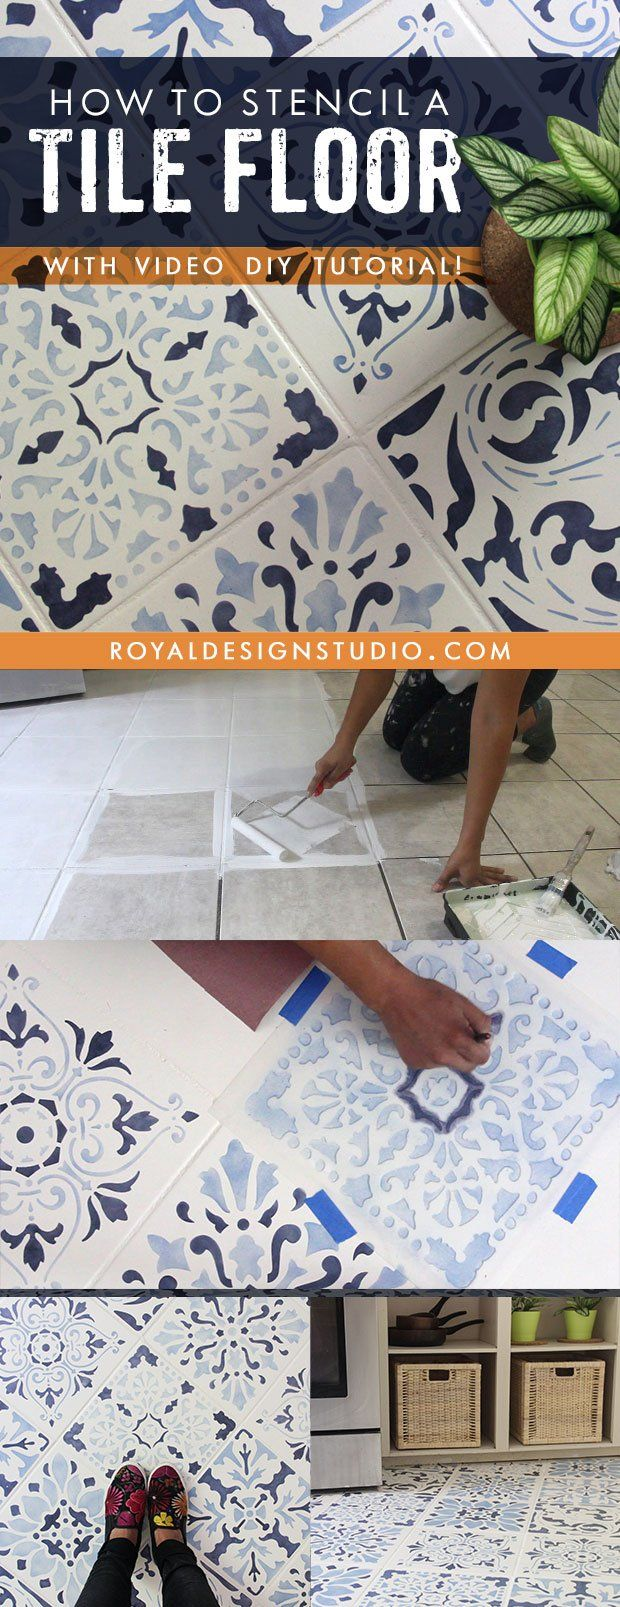 How to stencil a tile floor in 10 steps kitchen bathroom floor this could be how i solve the tile problem in downstairs bathroom add more tile and paint all of it how to stencil a tile floor in 10 steps painting dailygadgetfo Gallery